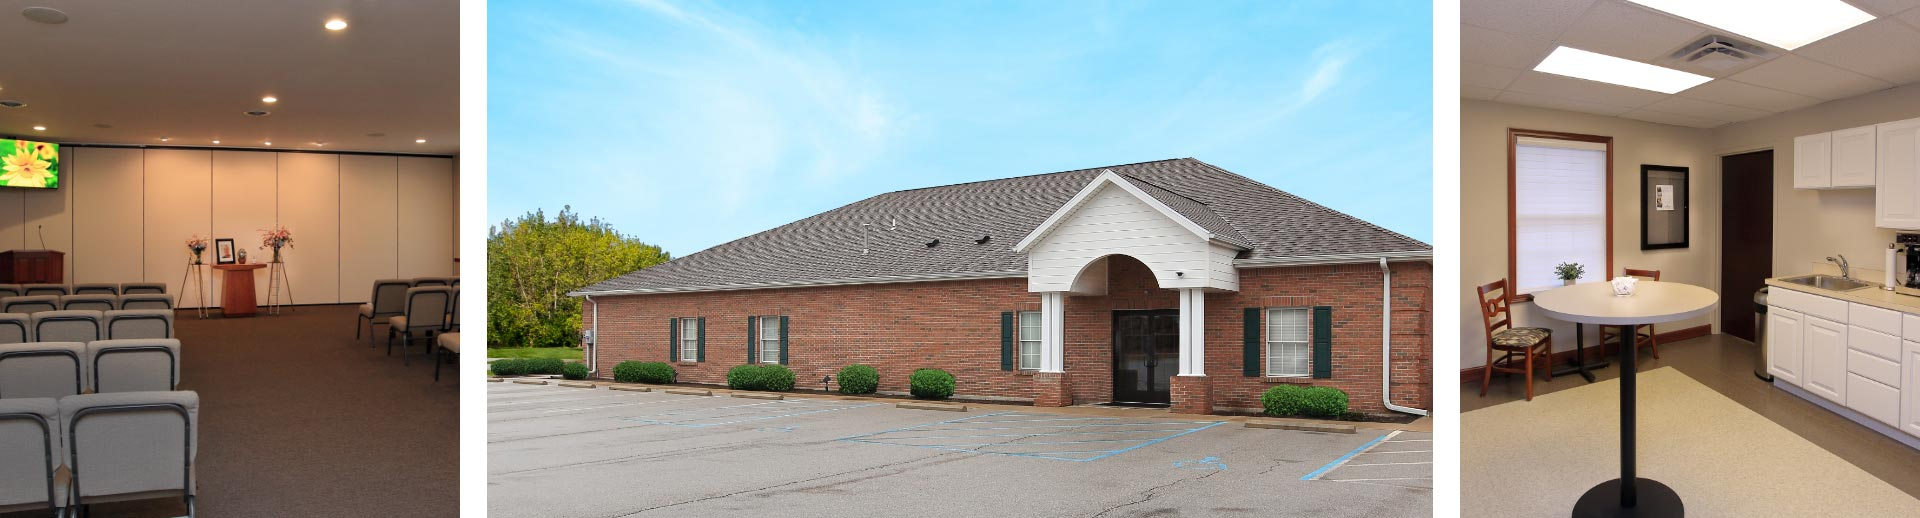 Funeral-Home-West-Toledo-OH